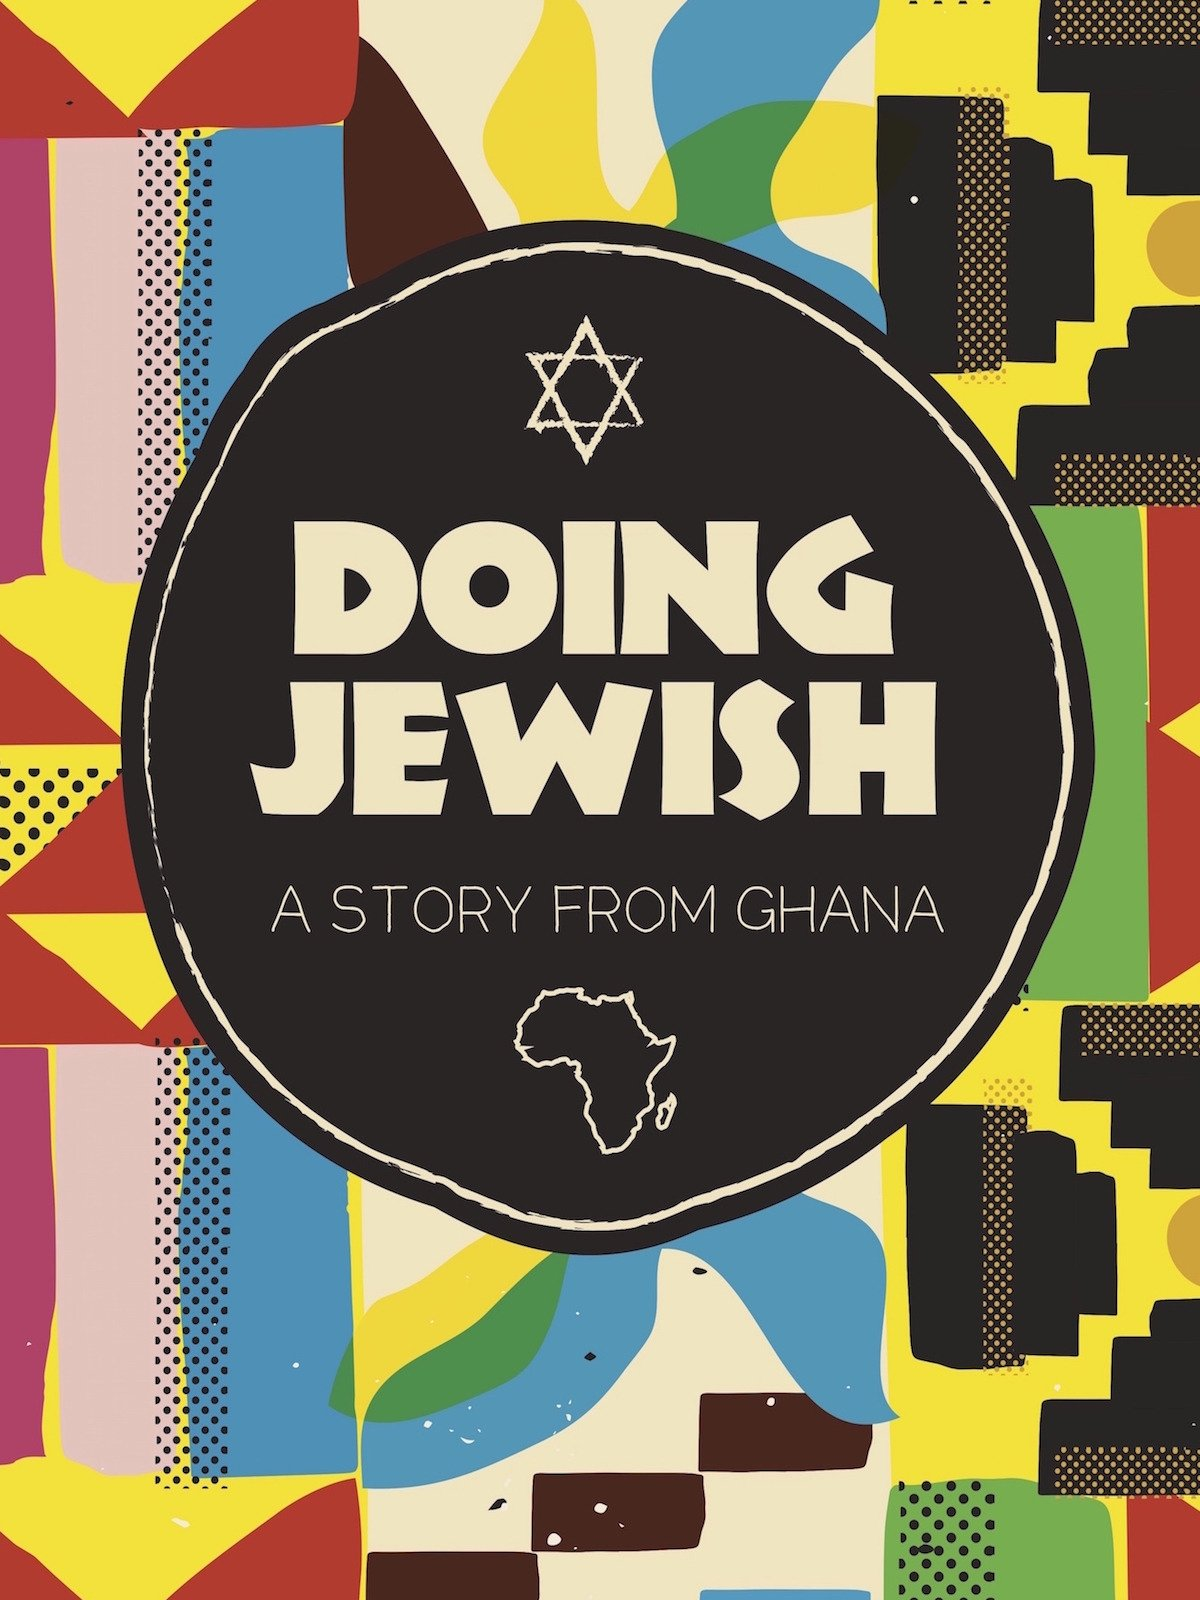 DOING JEWISH: A Story From Ghana (2016)